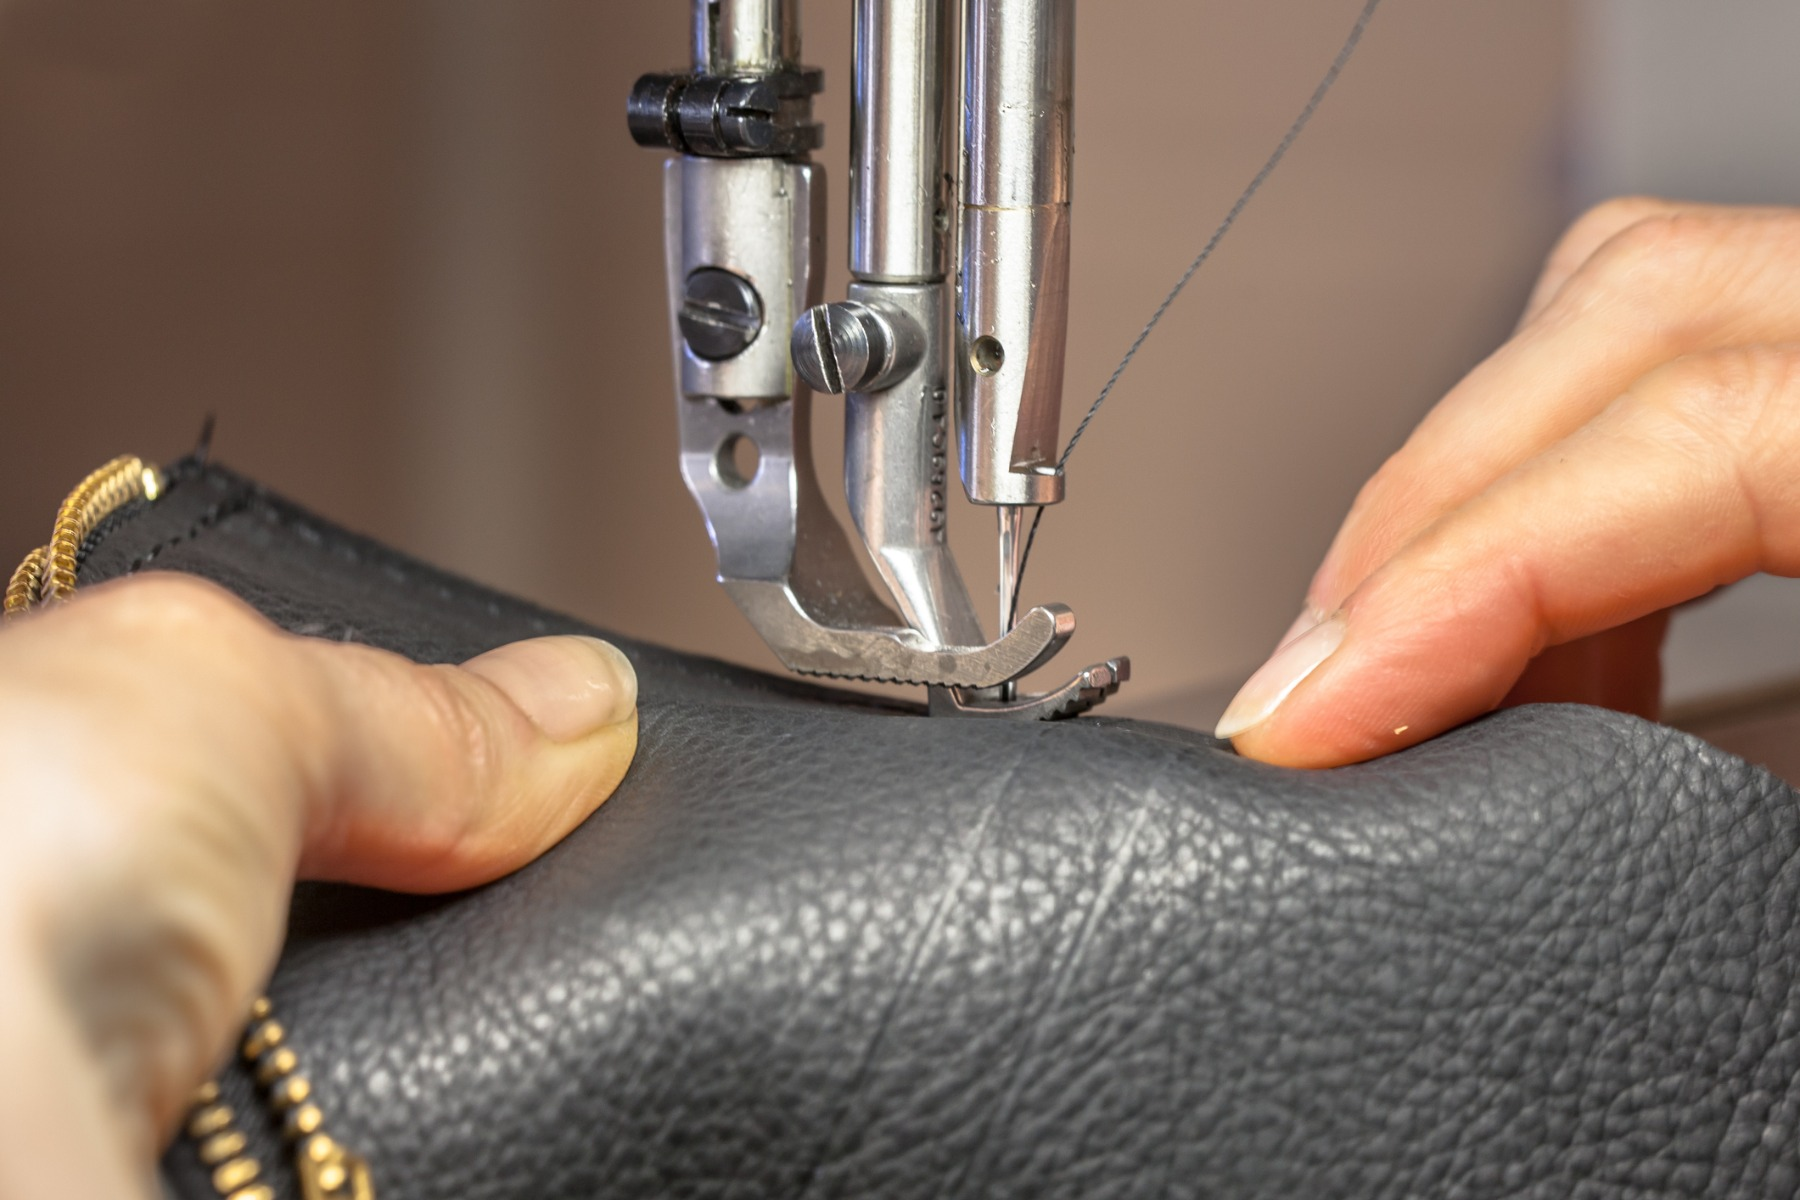 an example of the care needed to sew leather together